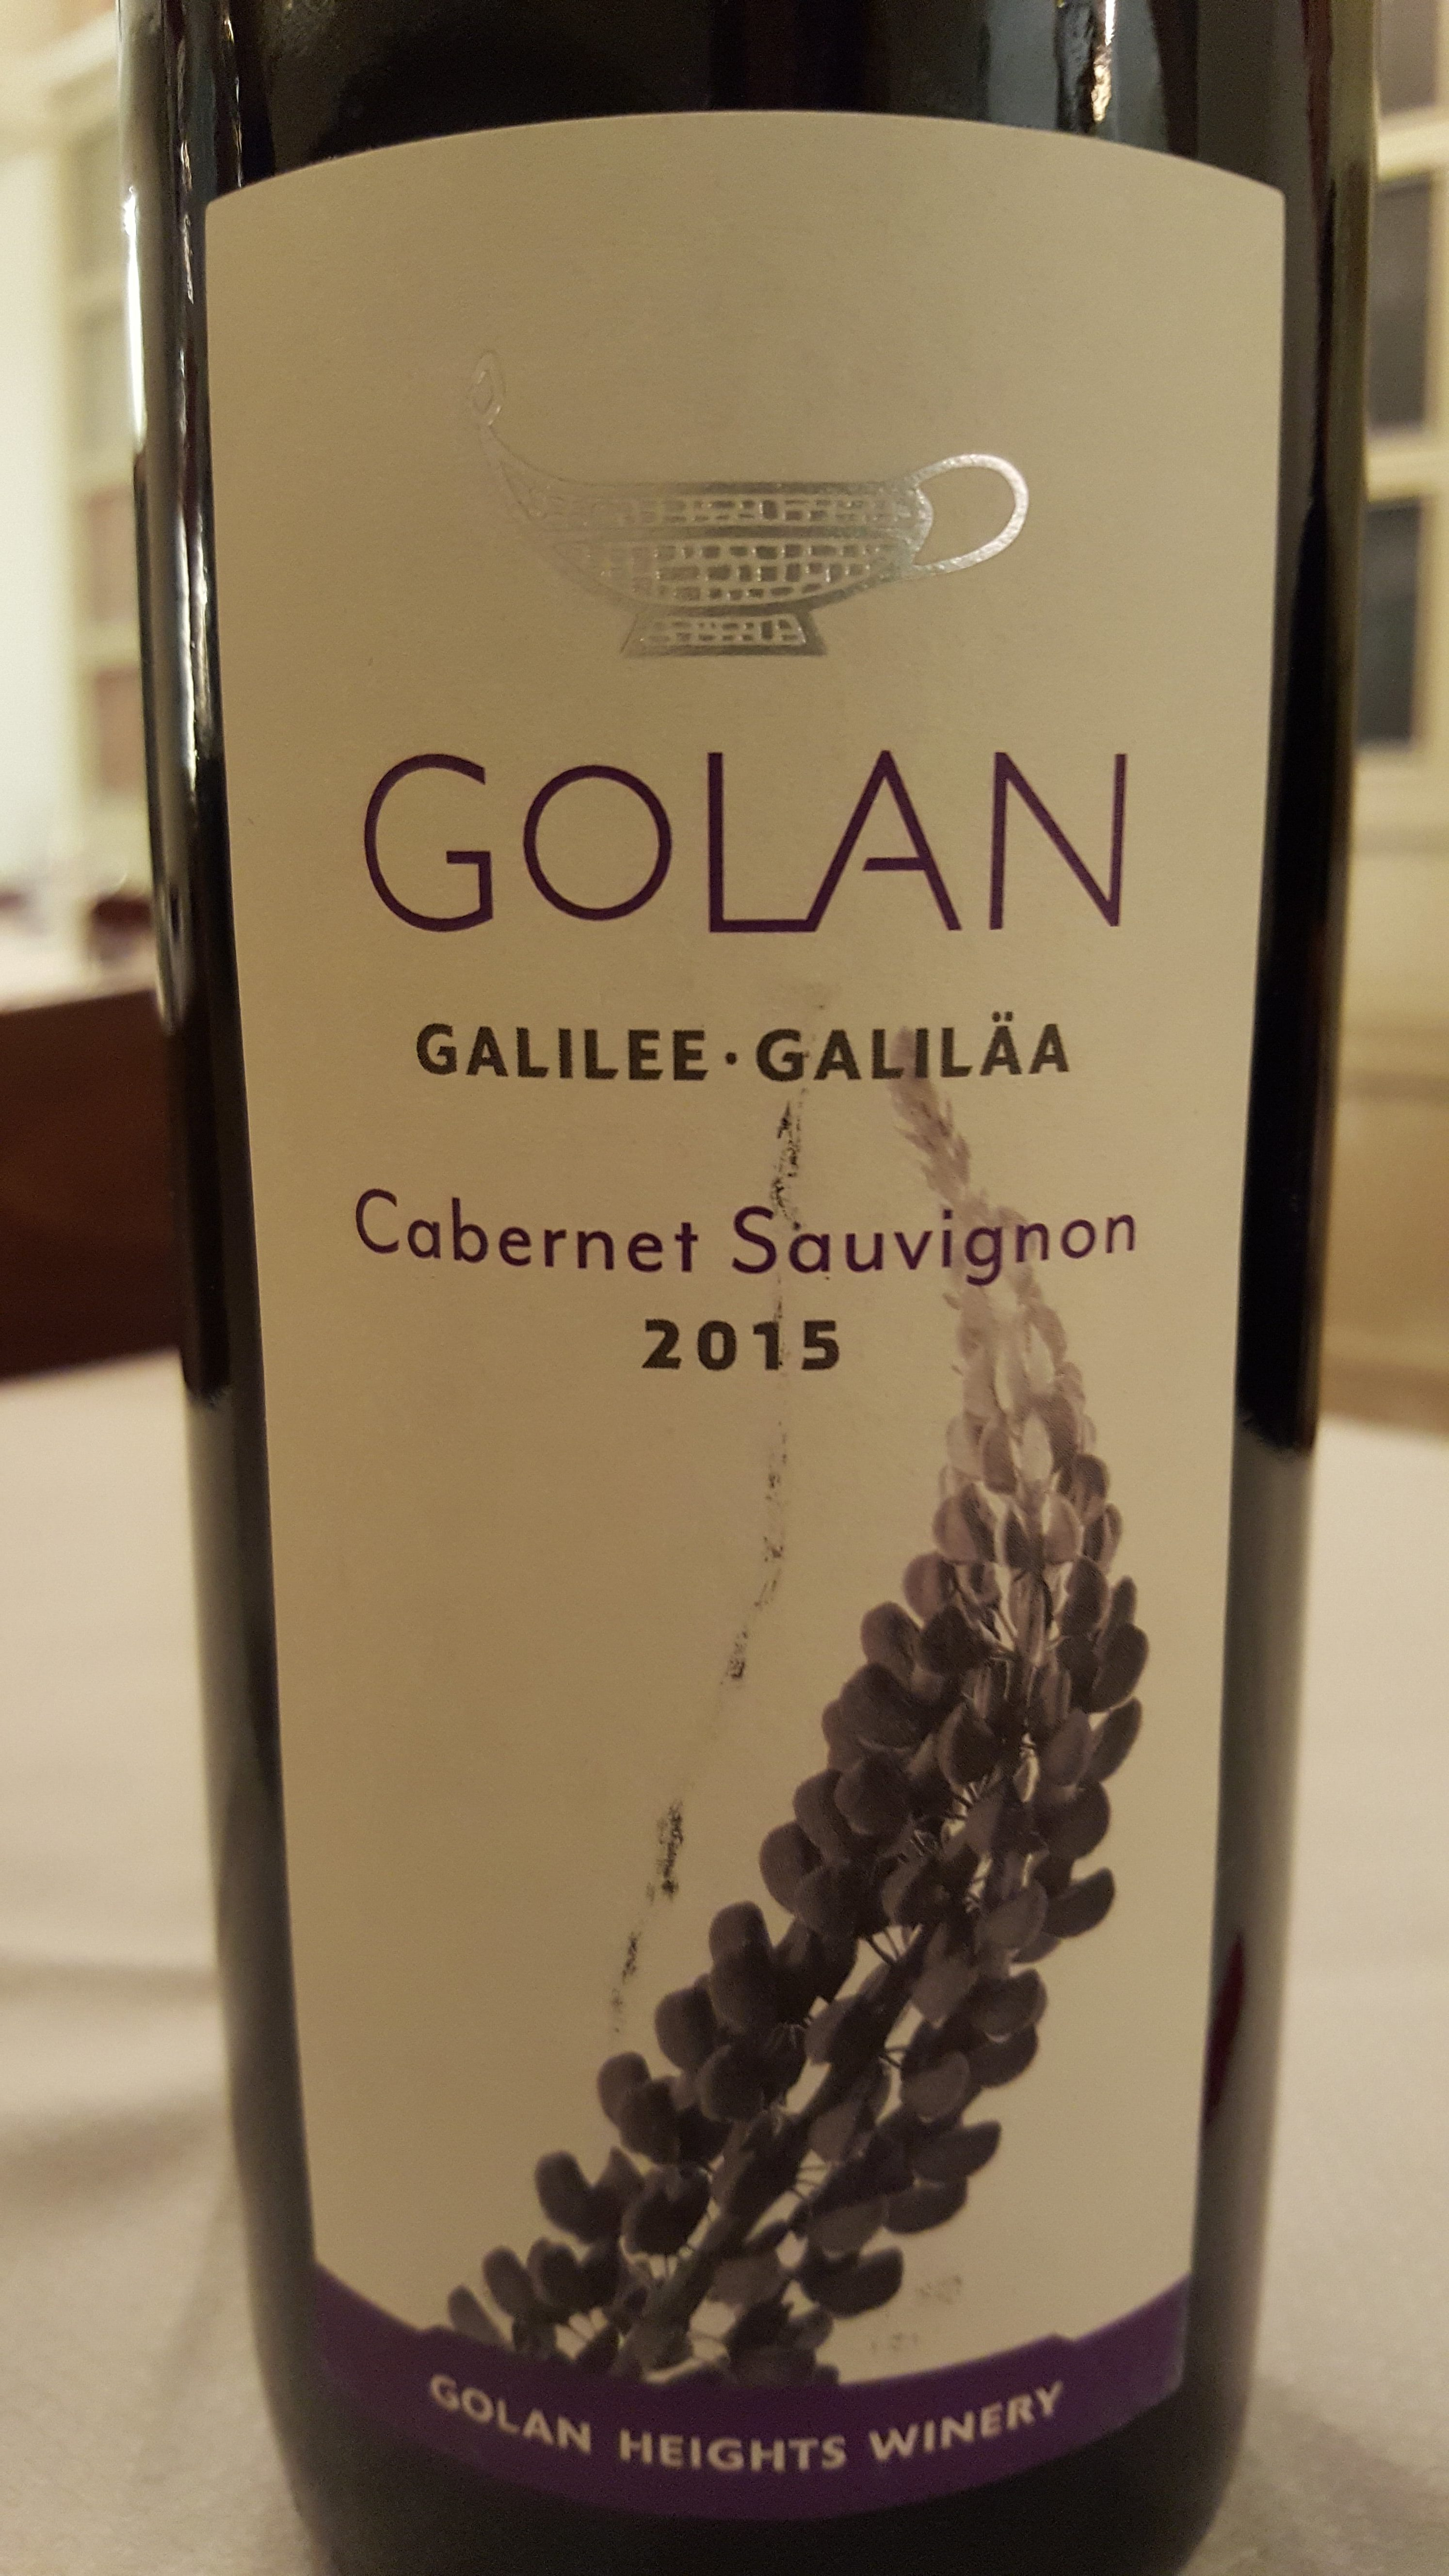 Wine from Galilee